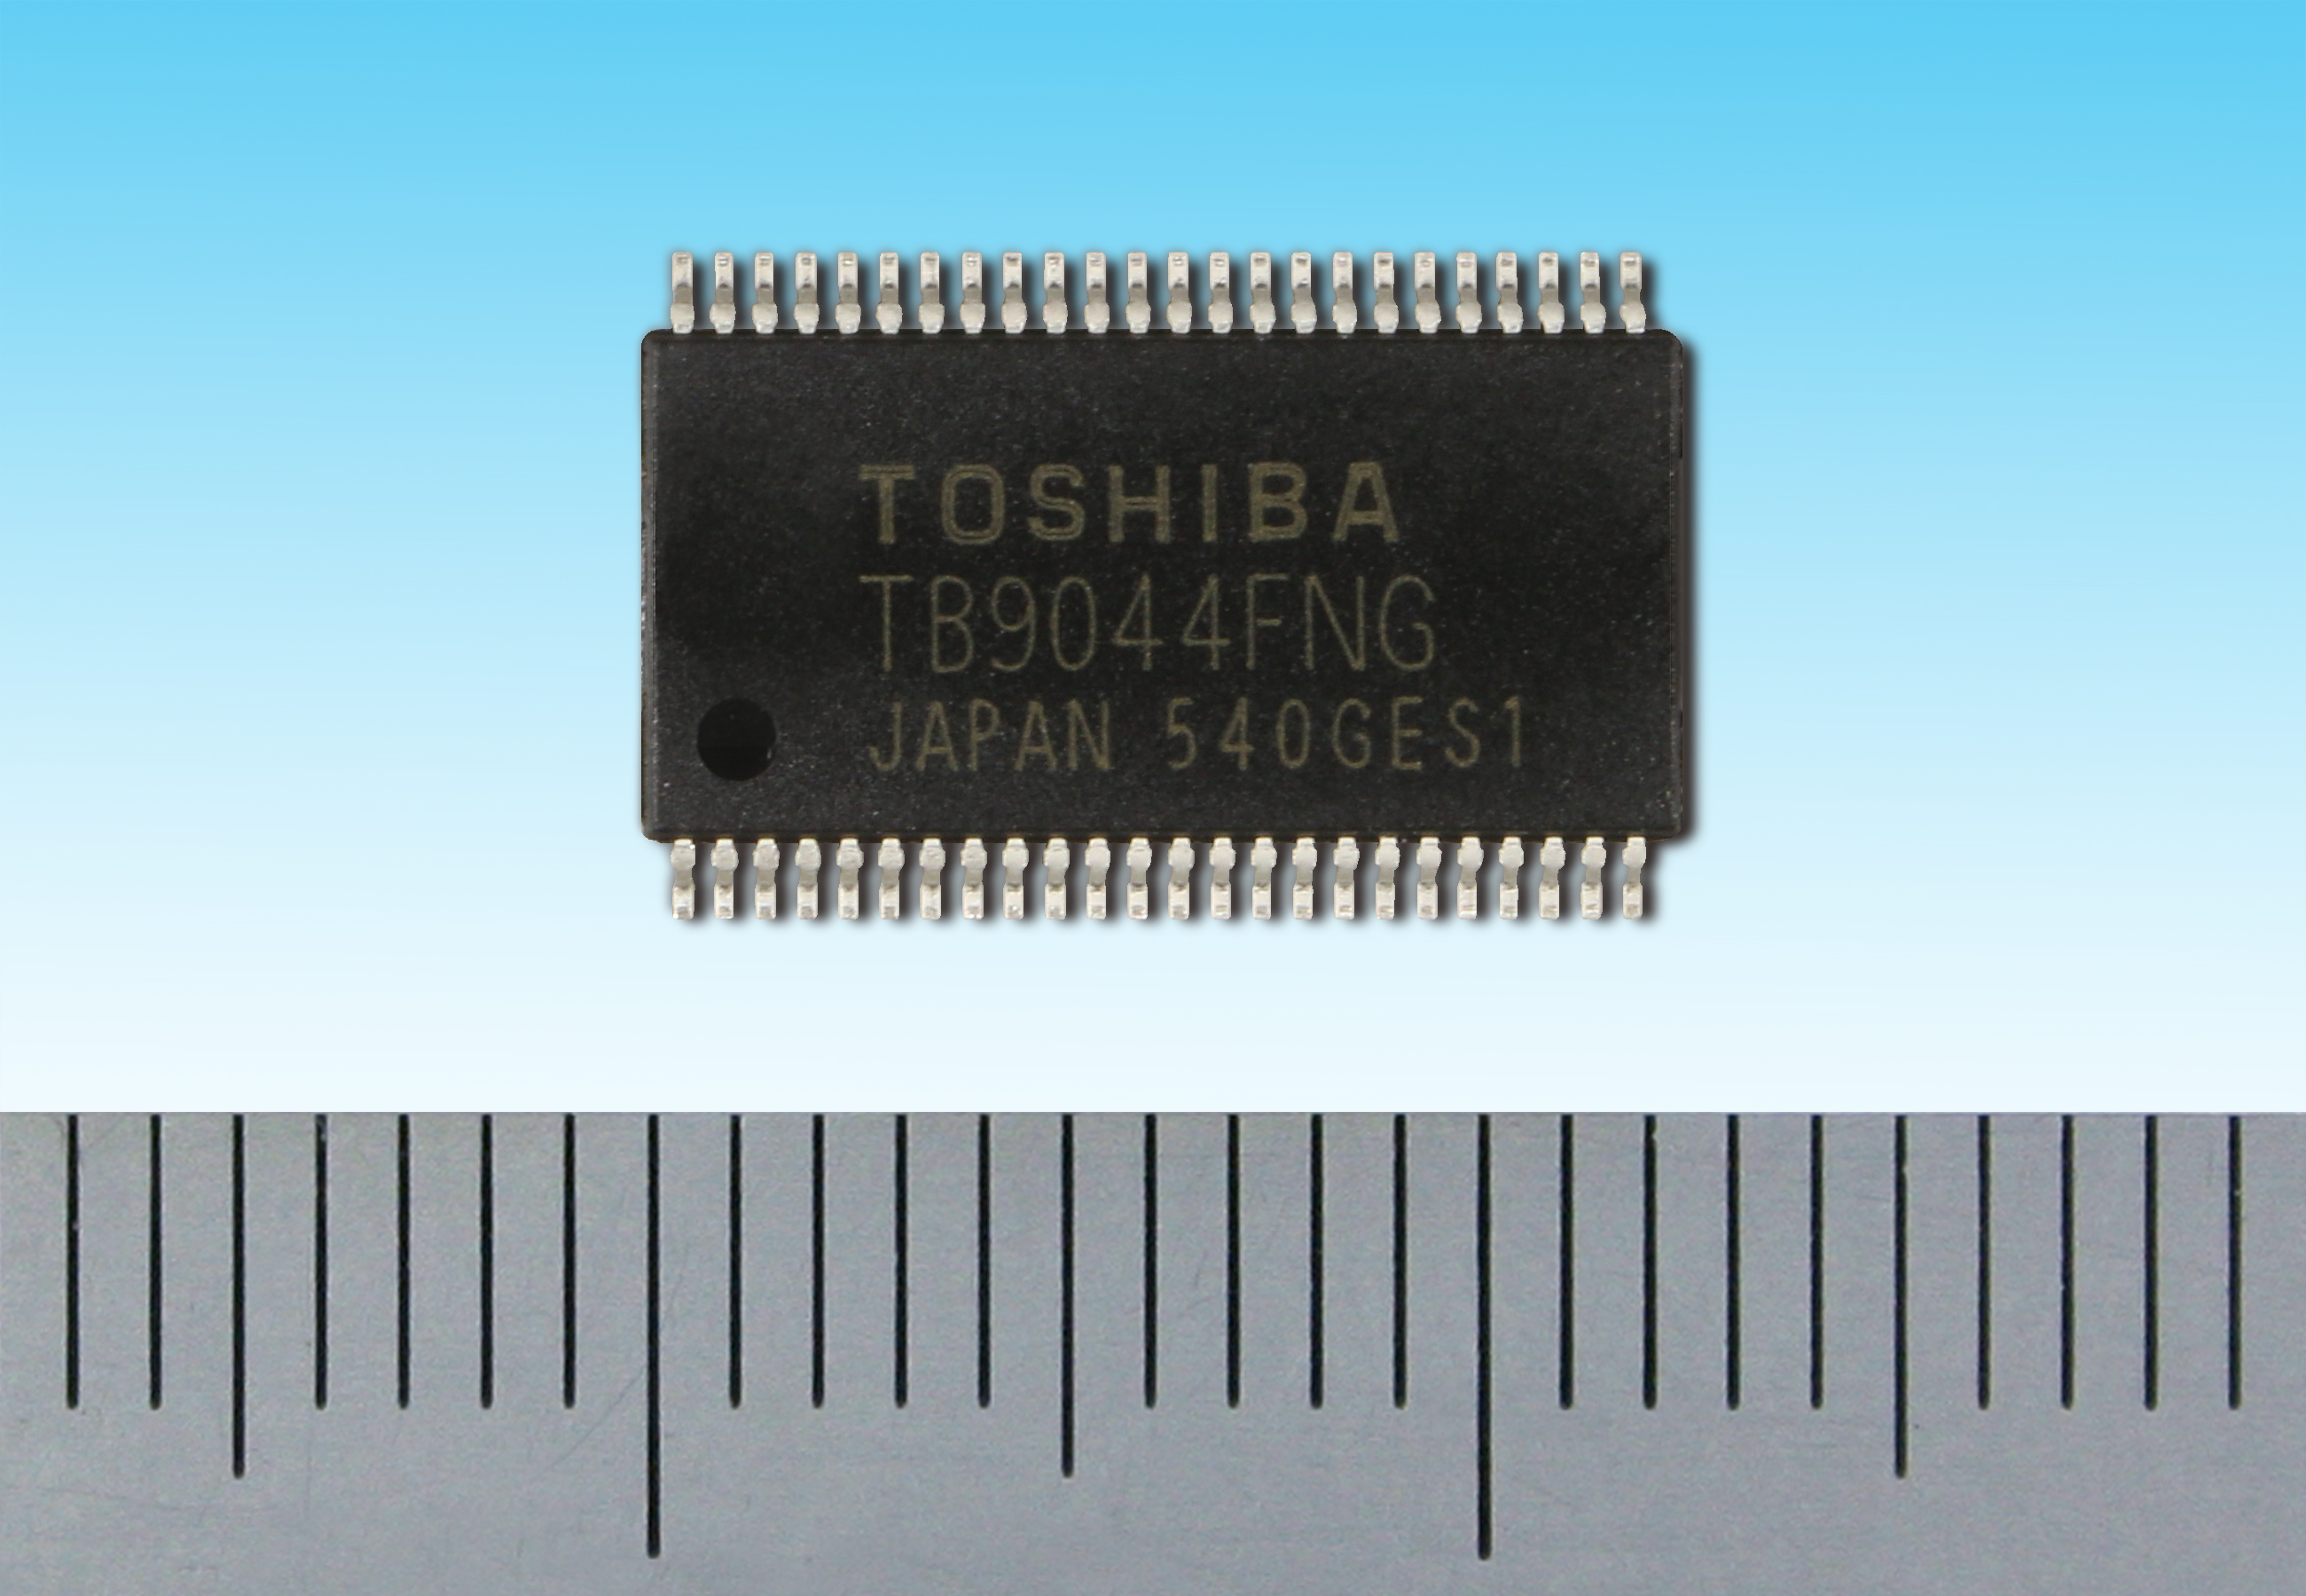 """Toshiba: """"TB9044FNG"""", a general-purpose system power IC with multiple outputs achieving functional safety for automotive applications. (Photo: Business Wire)"""